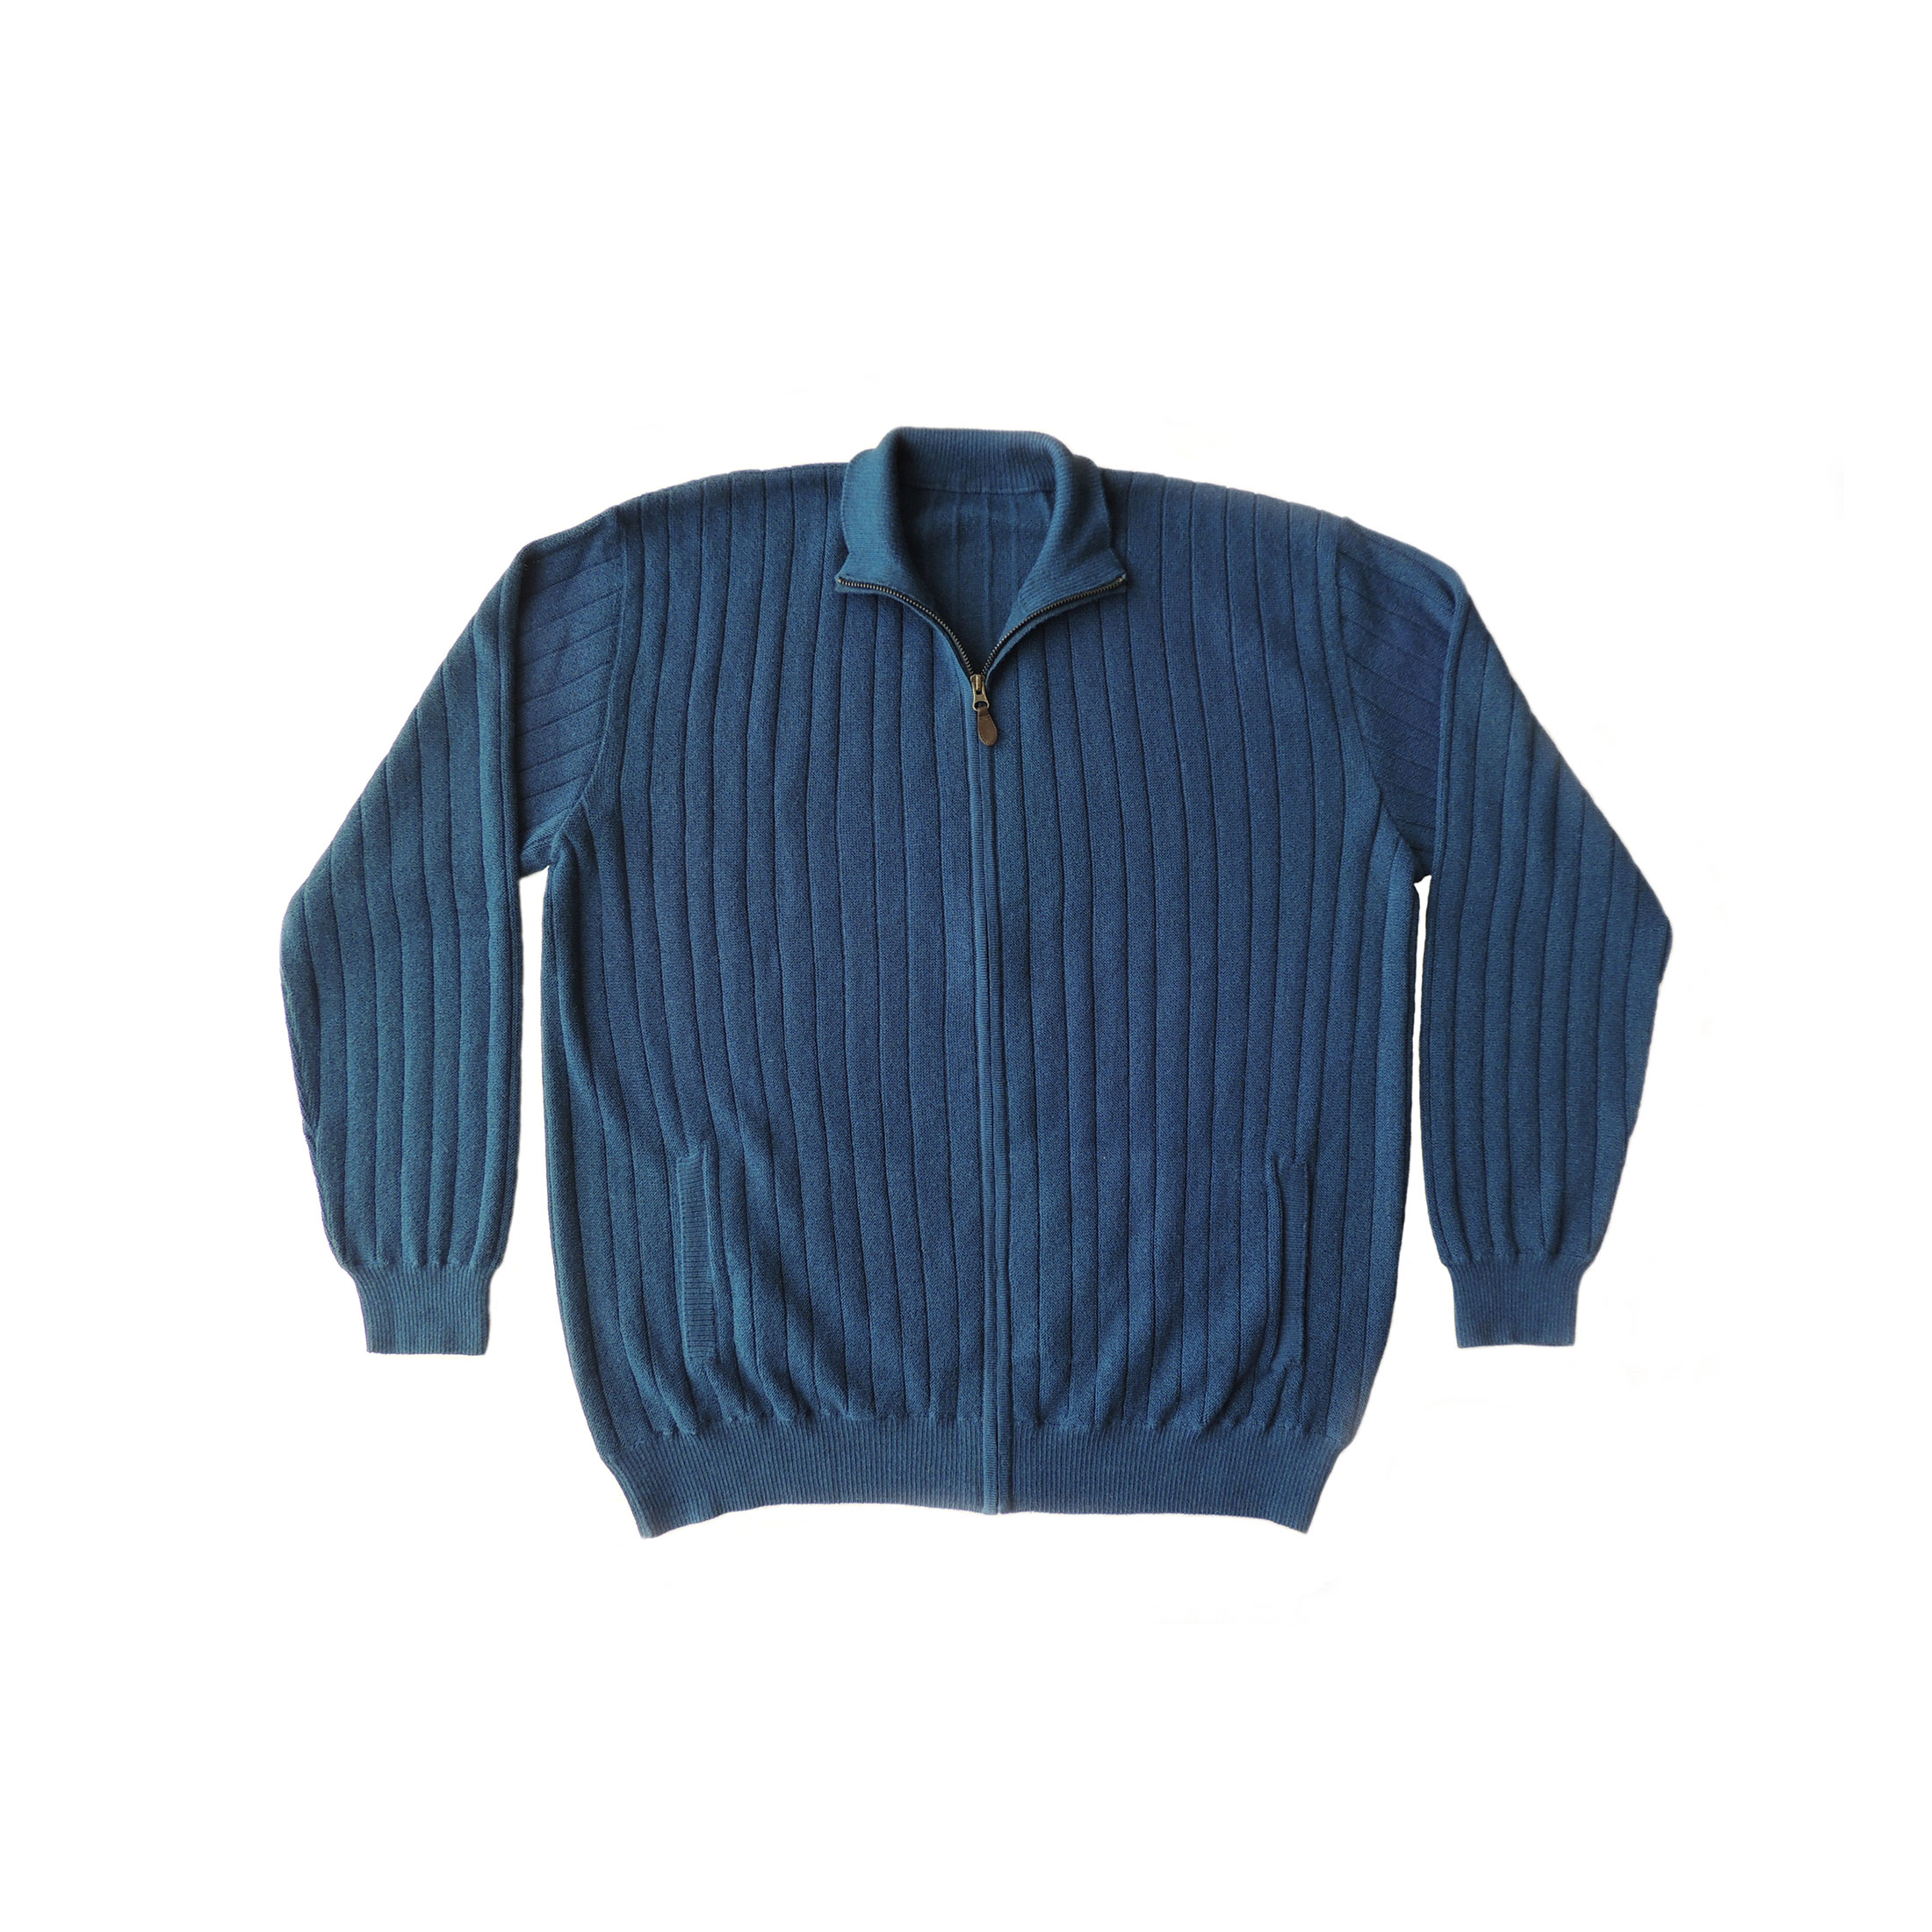 PFL Knitwear Men's cardigan / sweater with full zip long sleeves and side pockets.shapphire blue . classic fit A fantastic warm winter cardigan made of luxary natural 80% baby alpaca and 20% merino wool.